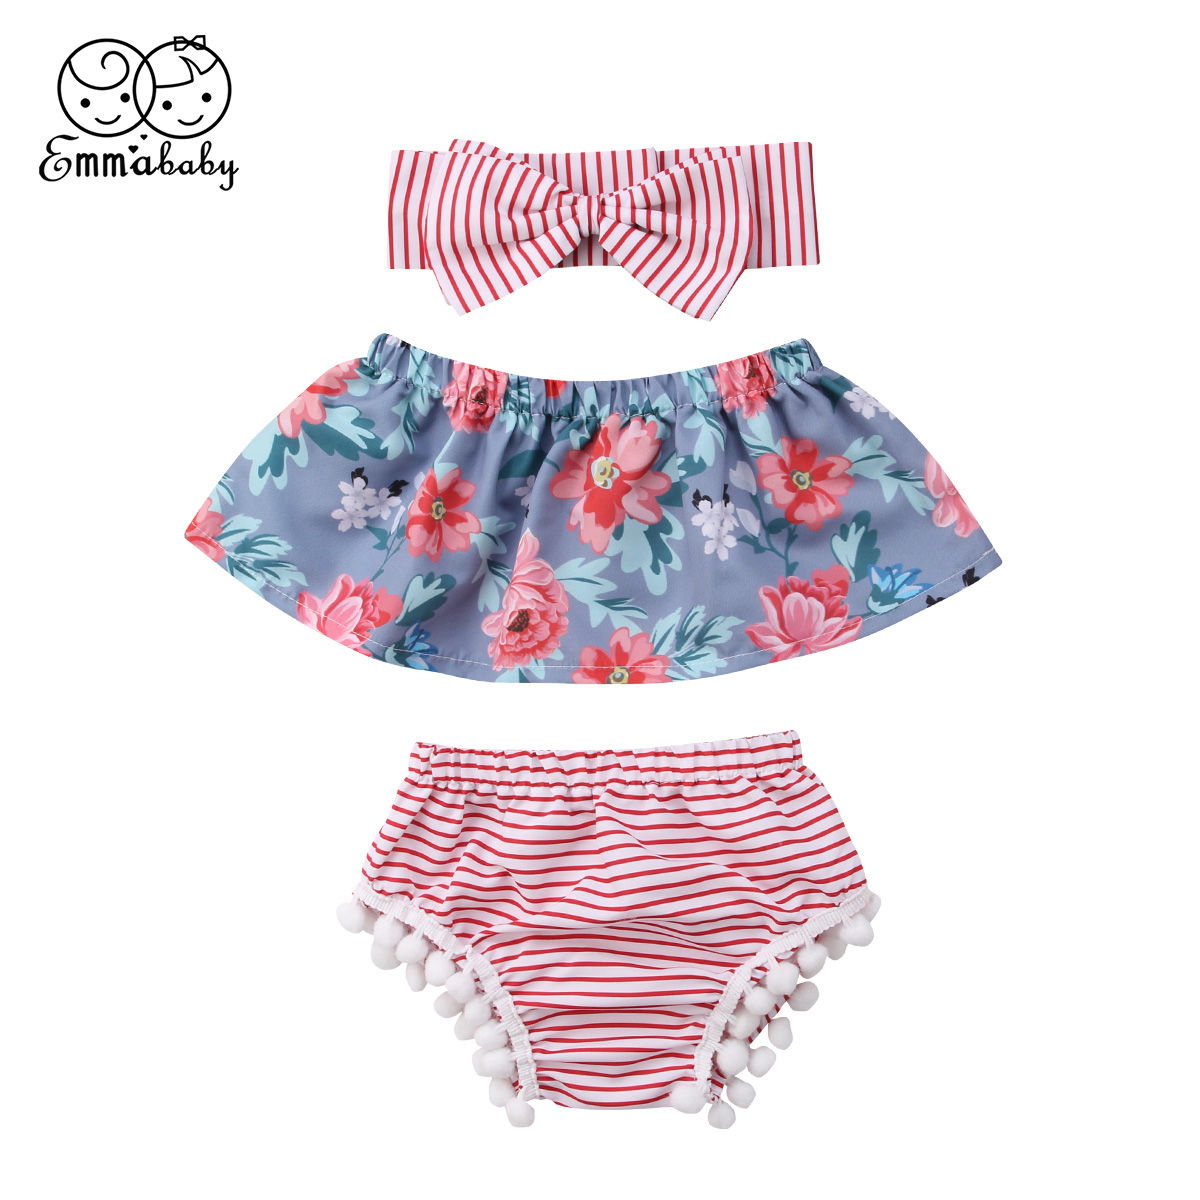 Emmababy Newborn Baby Gils Off Shoulder Tops +Stripe Shorts+Headband Outfits Set 3pcs ...